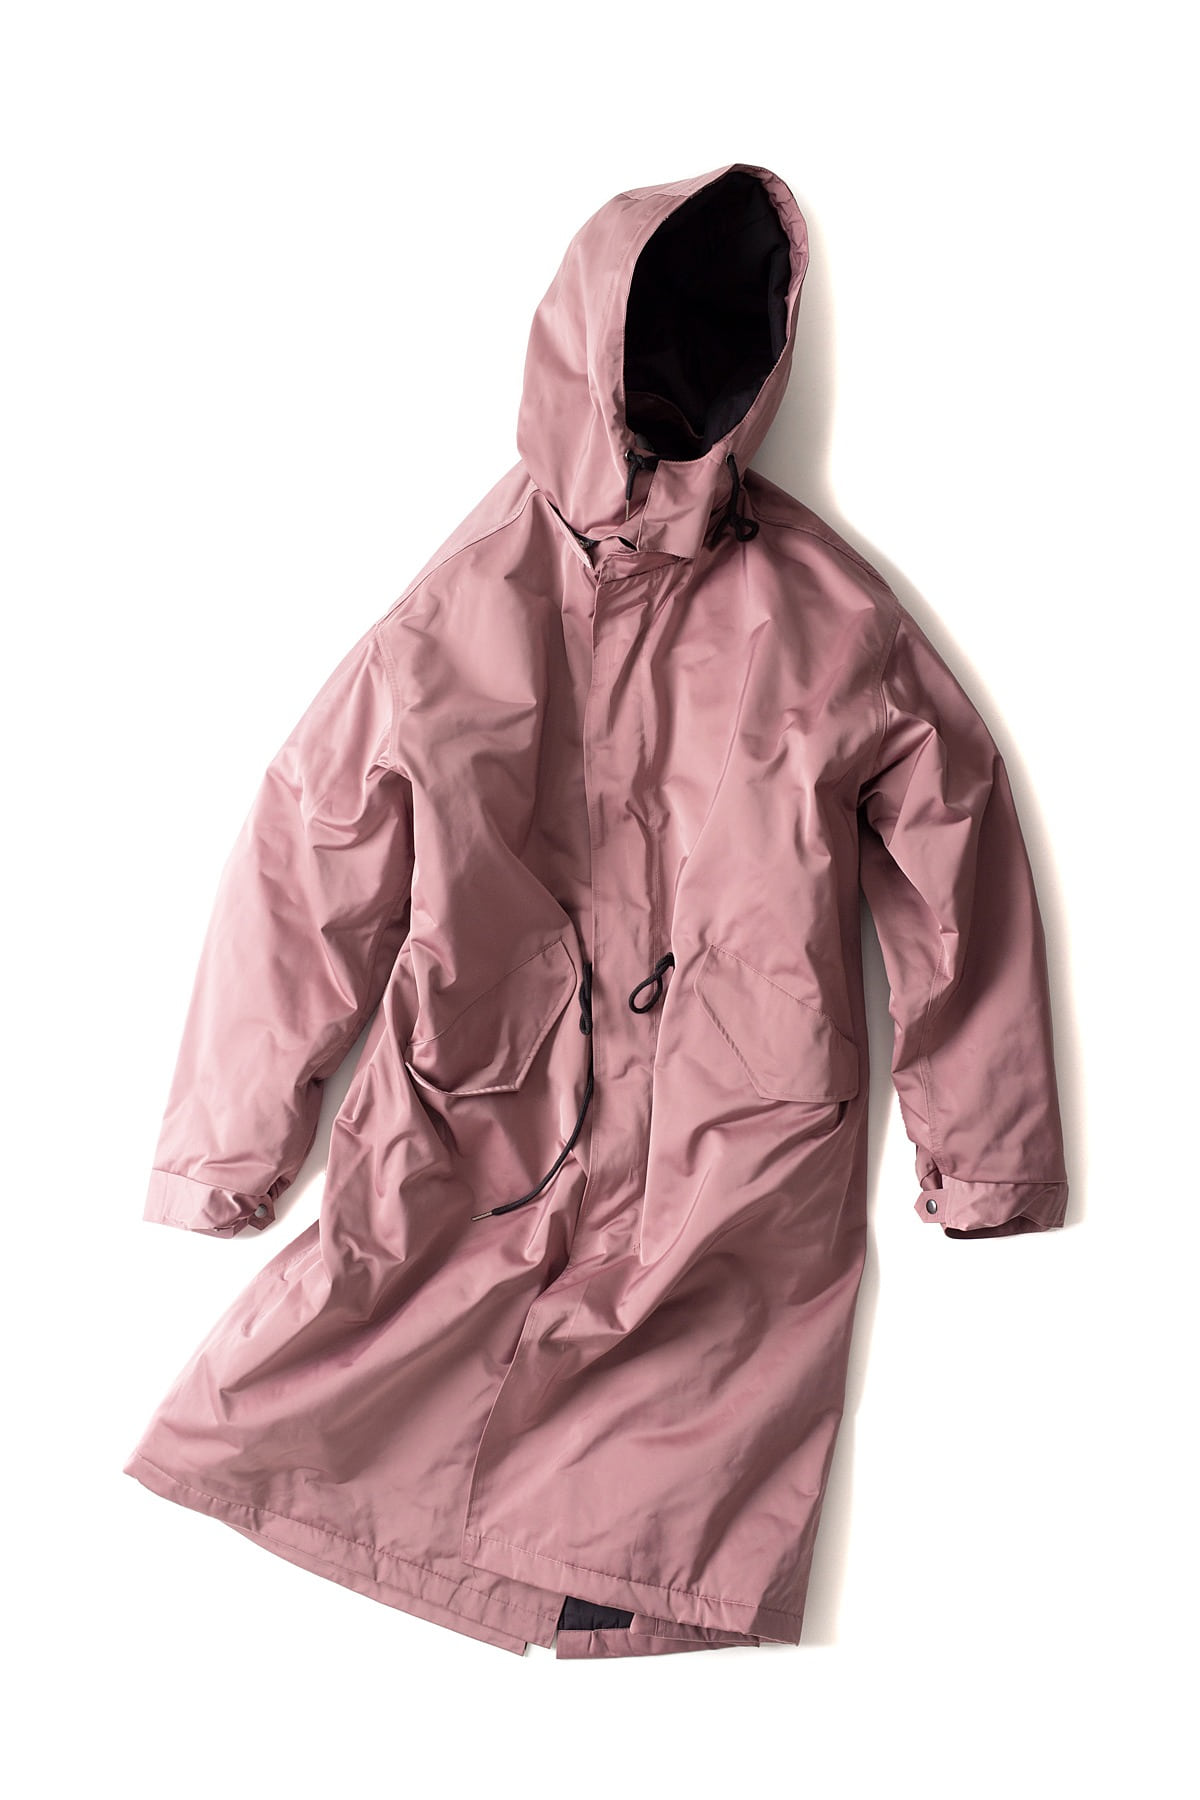 BIRTHDAYSUIT : Fishtail Parka (Pink)